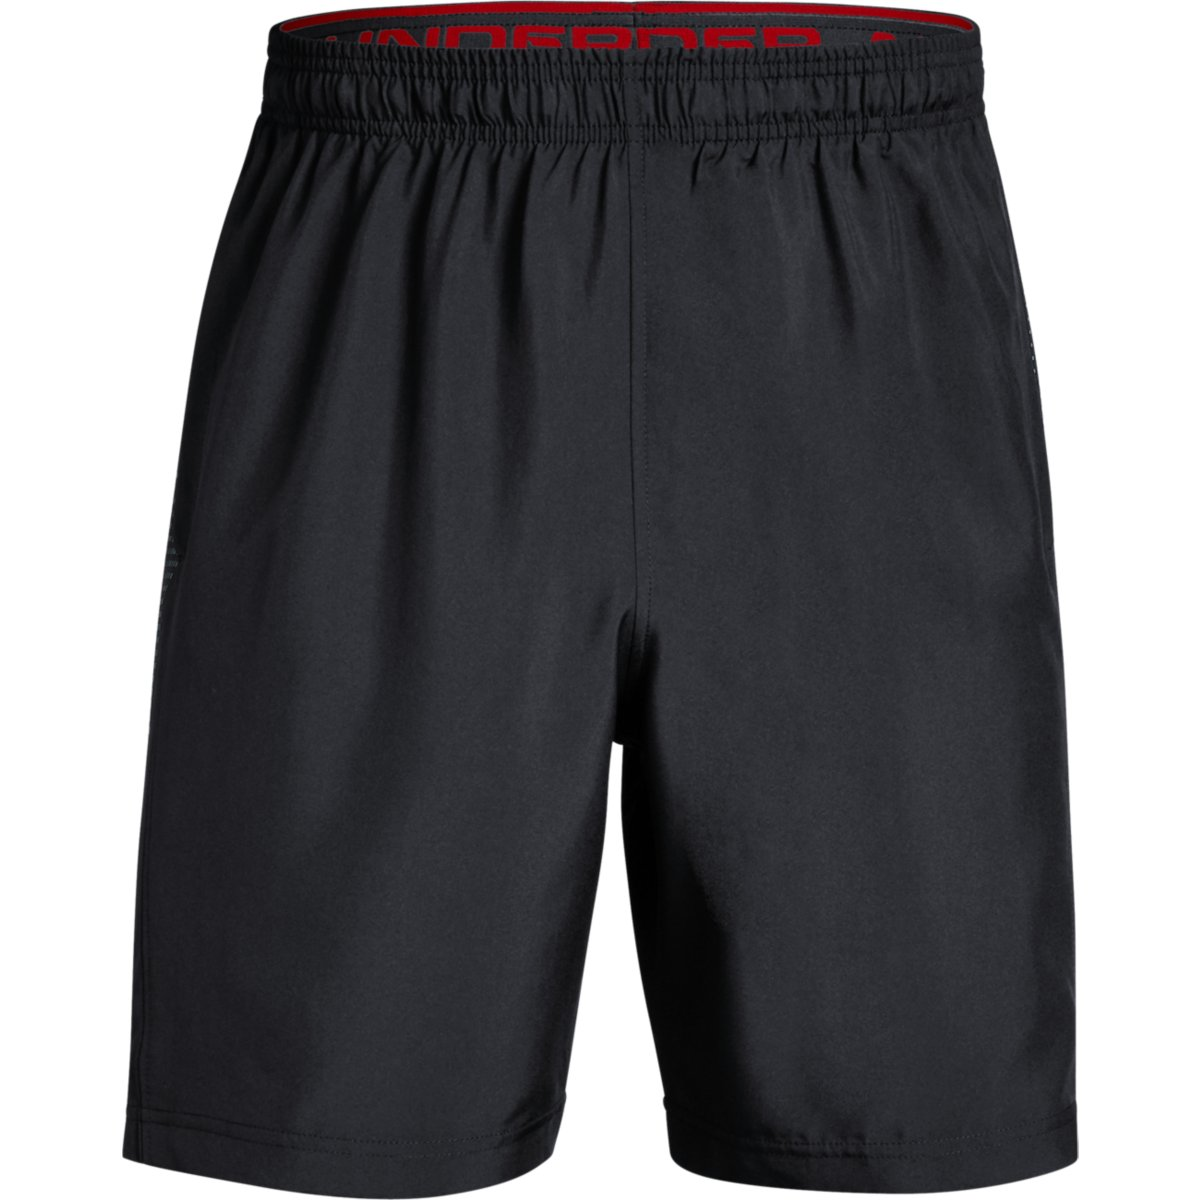 Under Armour Woven Graphic Gym Short | Amour